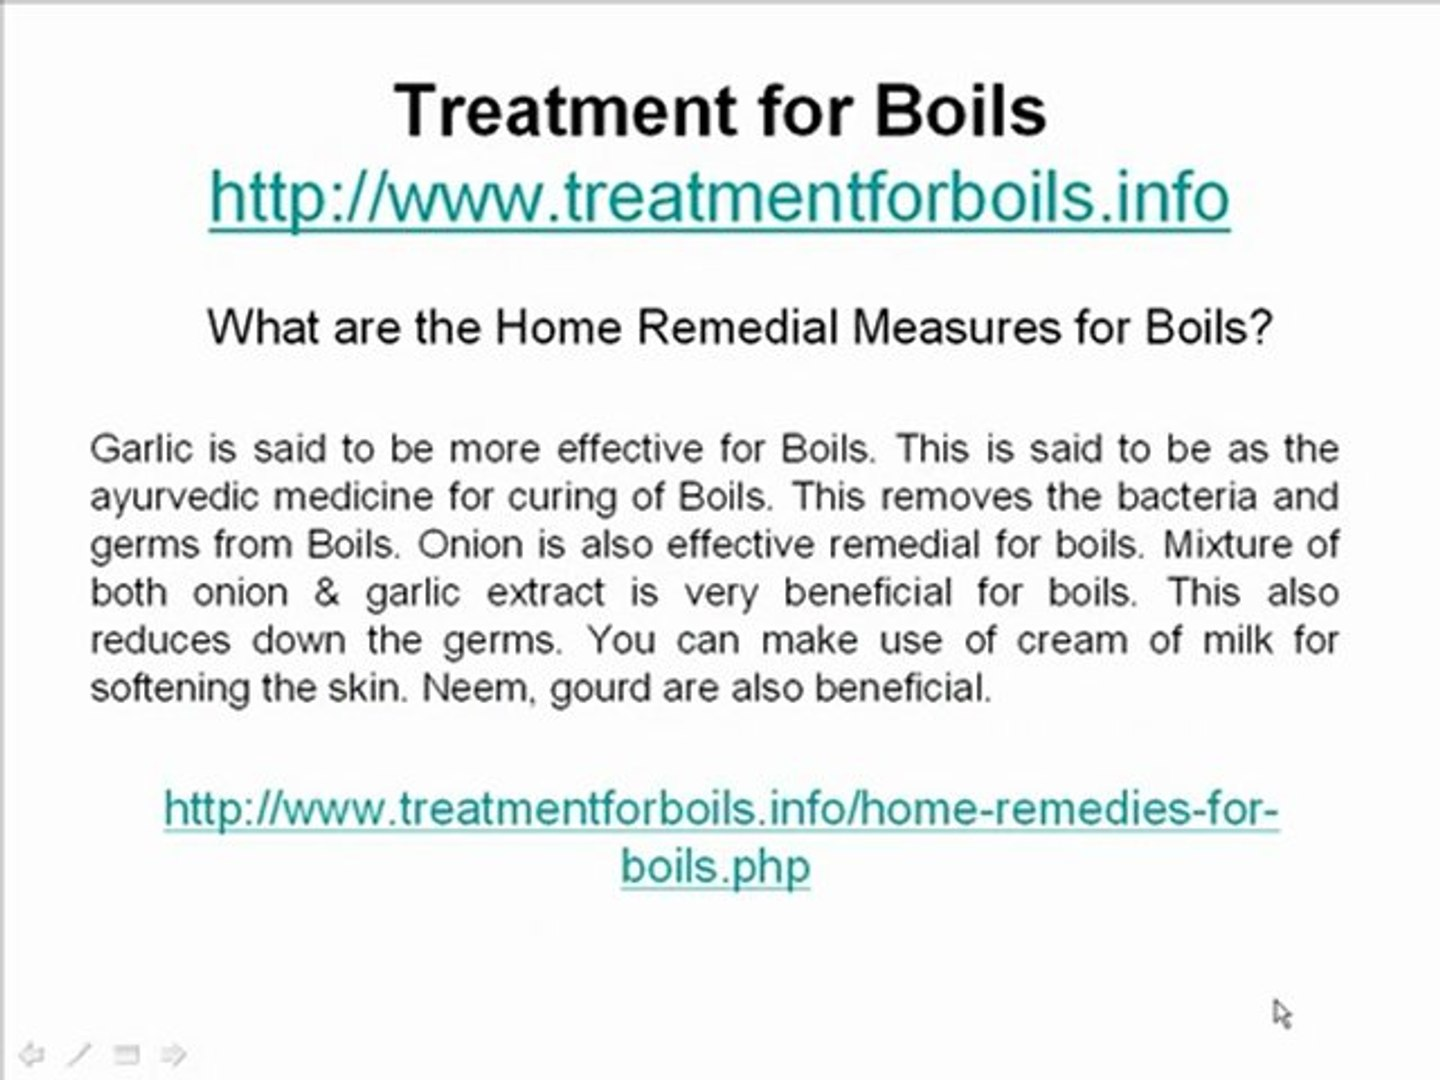 How can I cure my Boils?